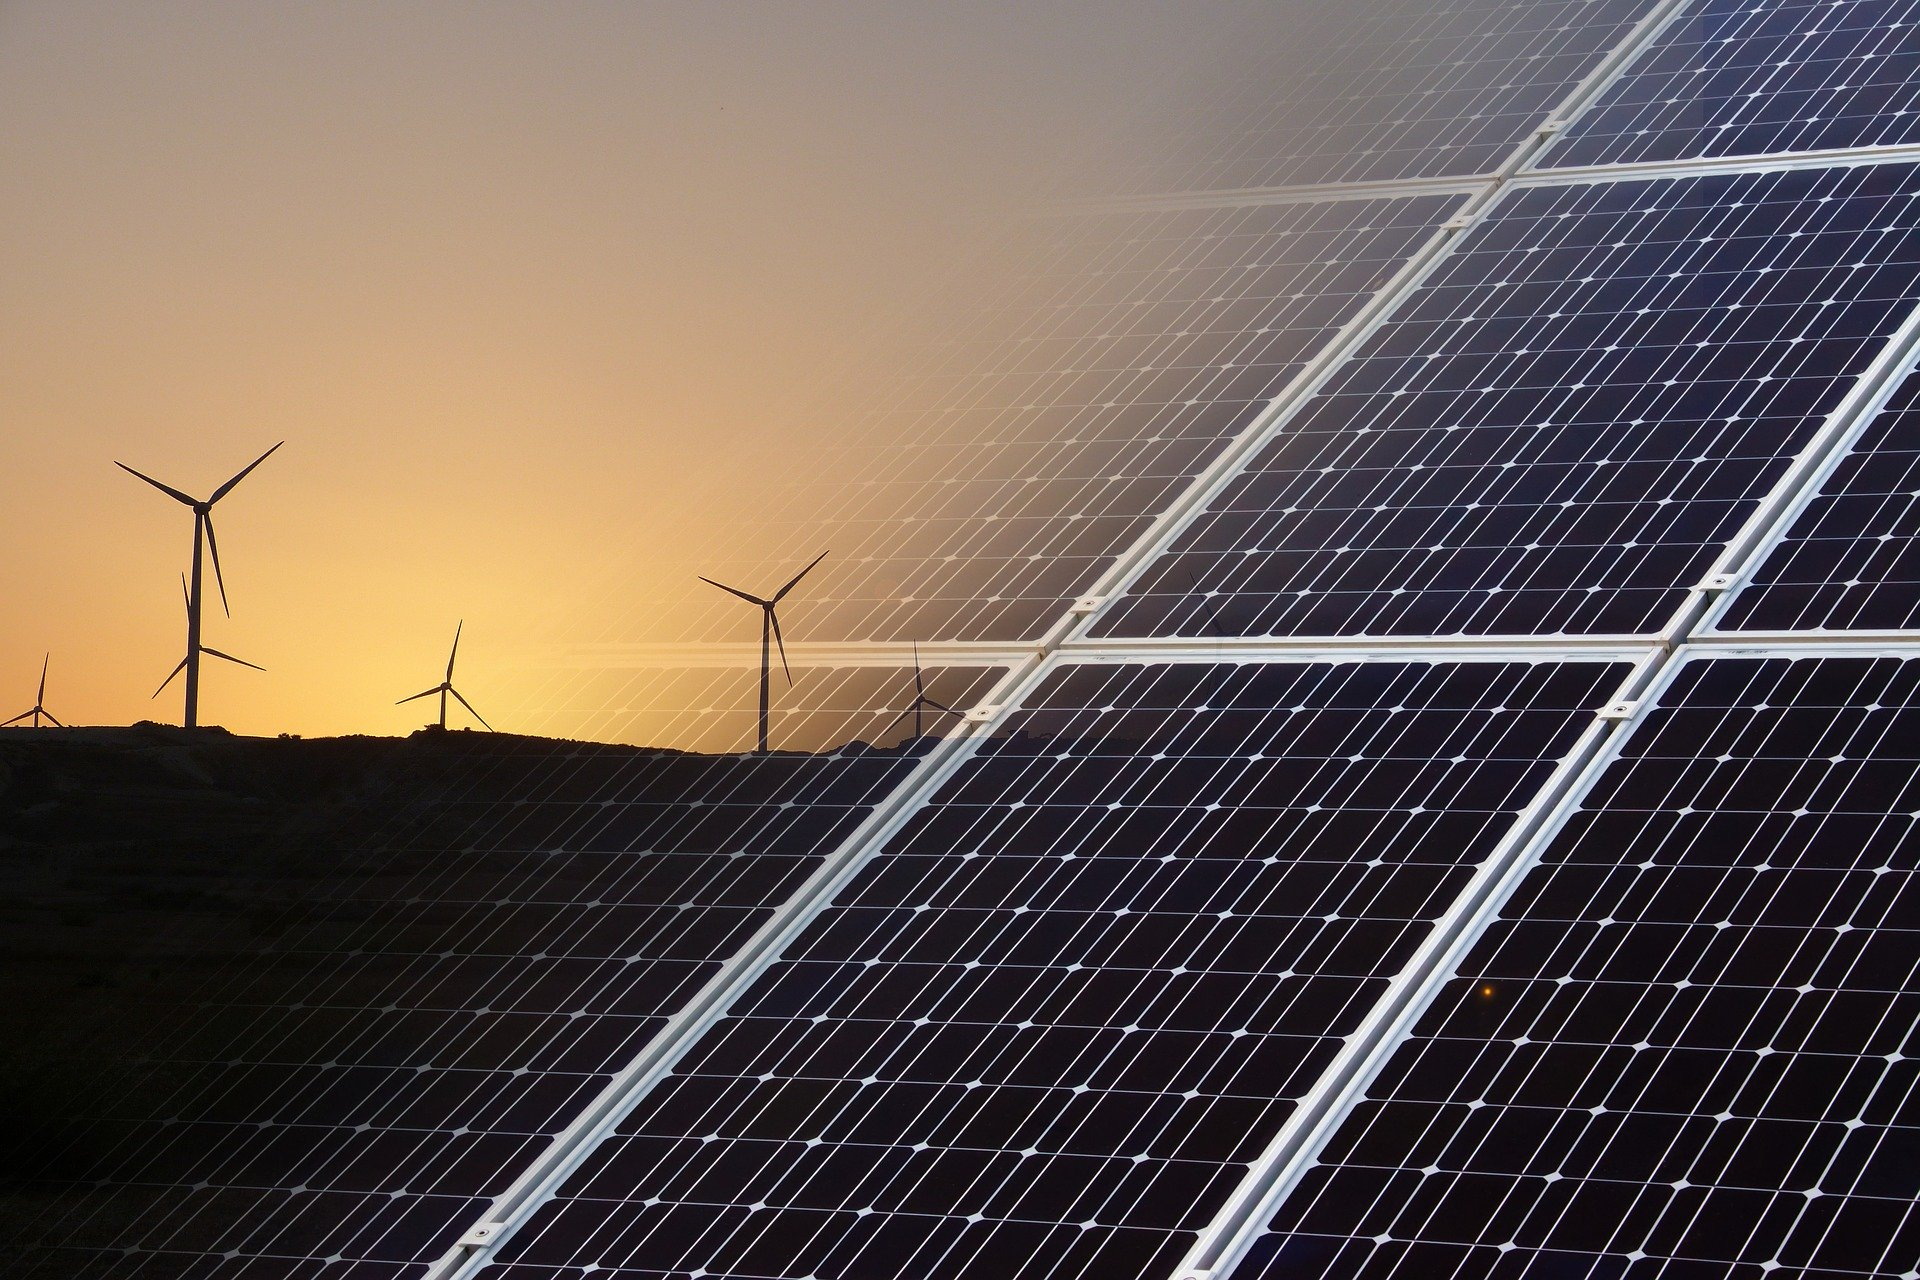 Extremadura's investment in renewables allows its electricity to be the 'greenest' in Spain